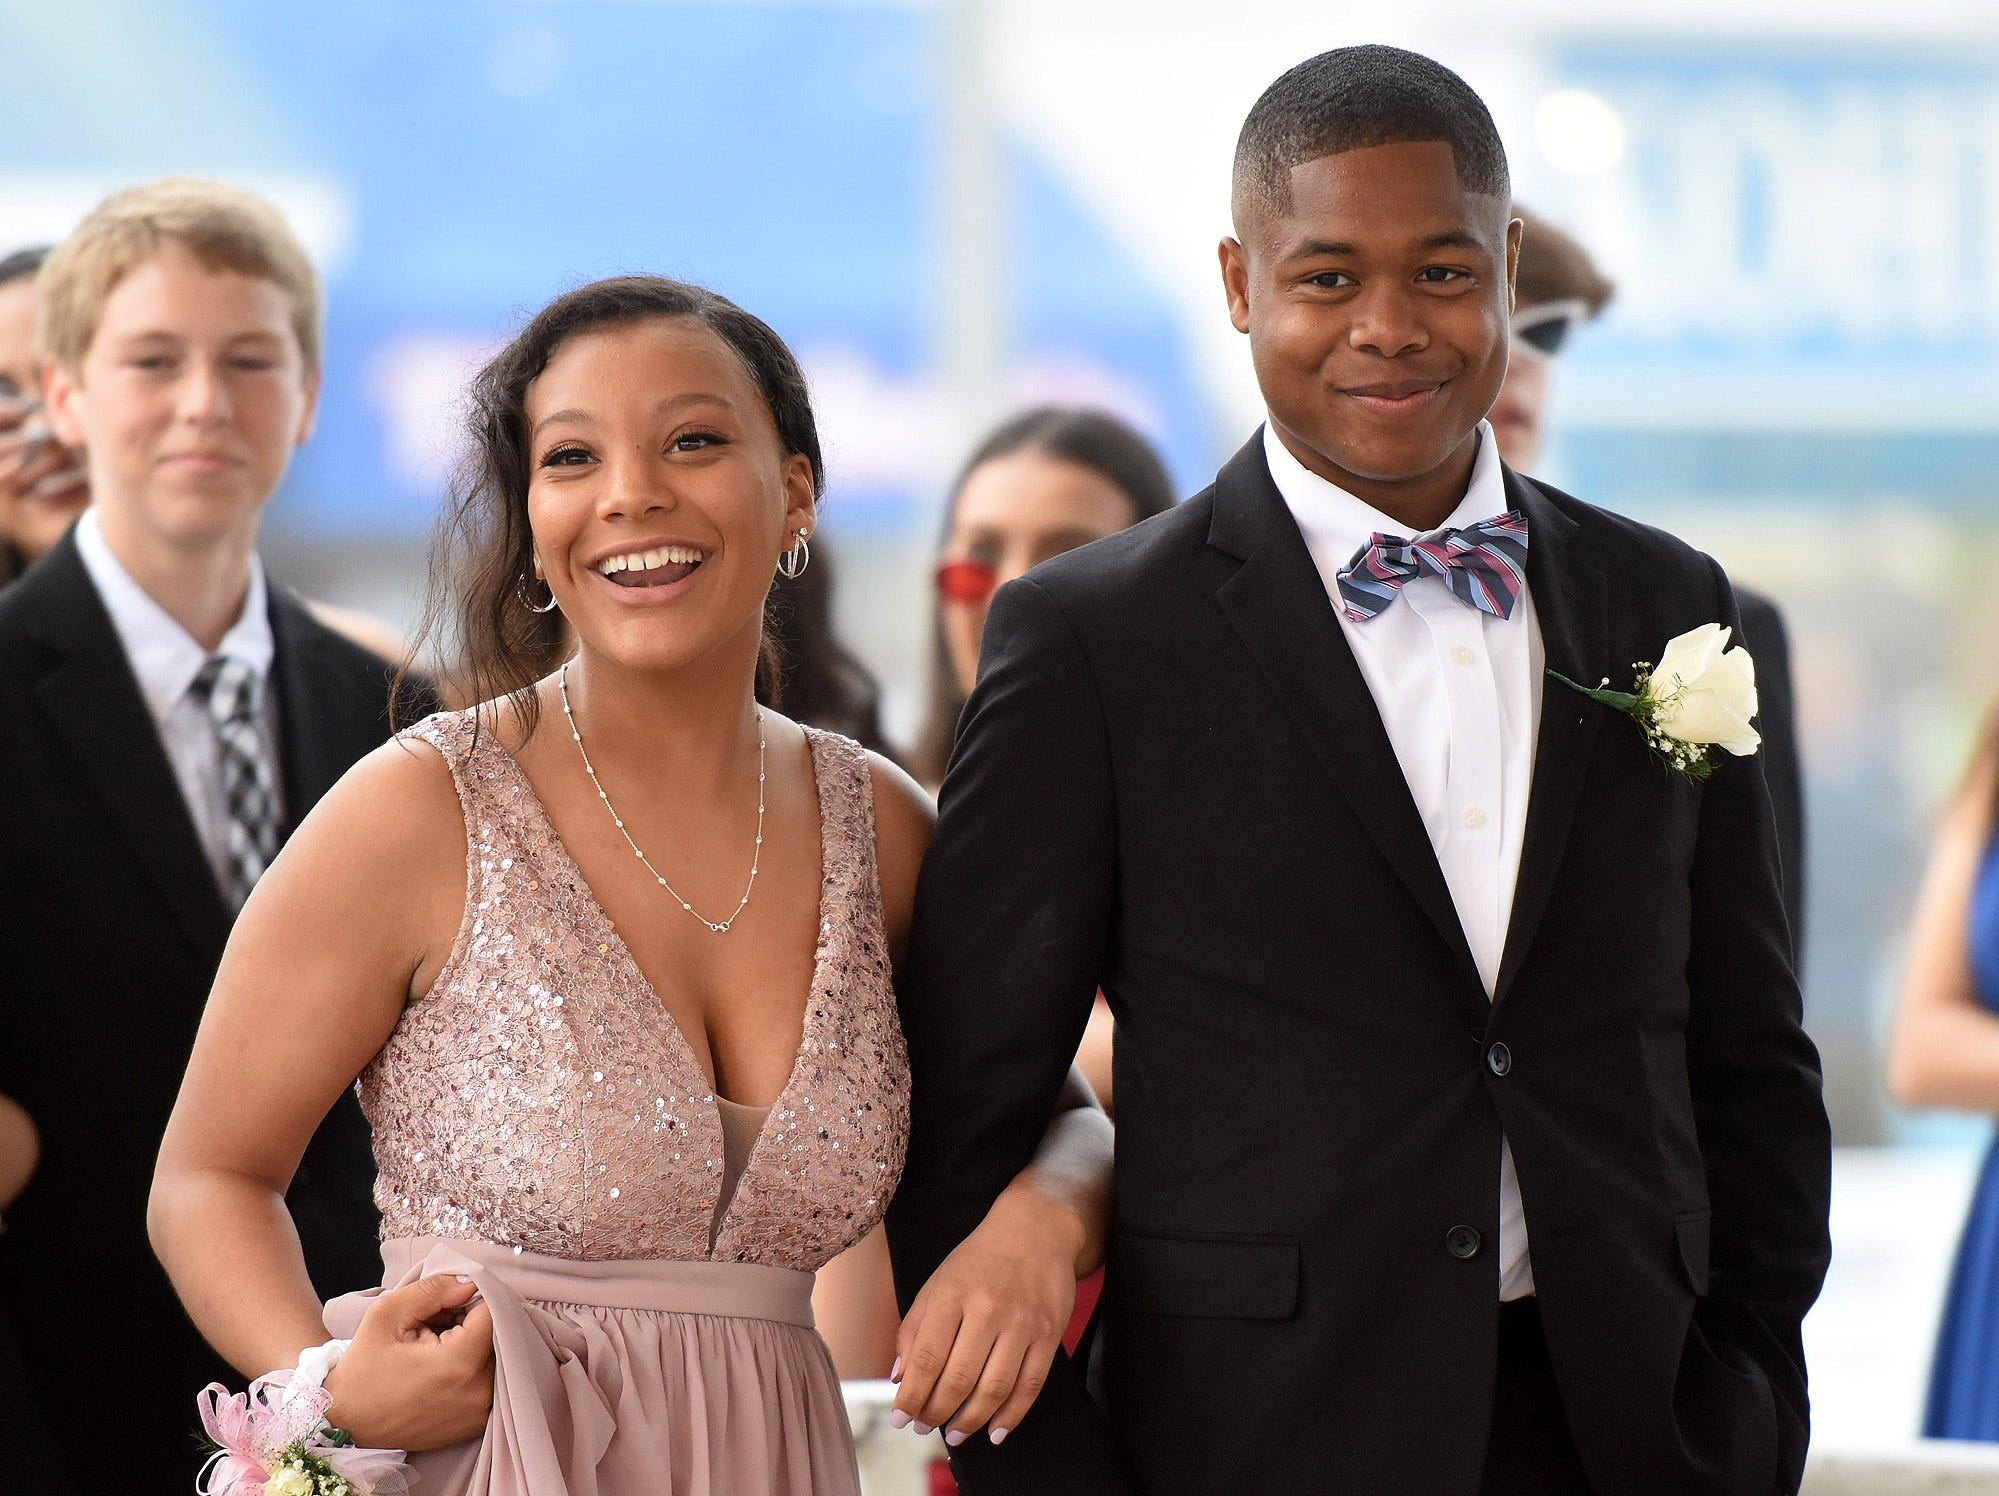 Cape Henlopen High School's grand march was held at the Rehoboth Beach Bandstand on Saturday, May 4, 2019.